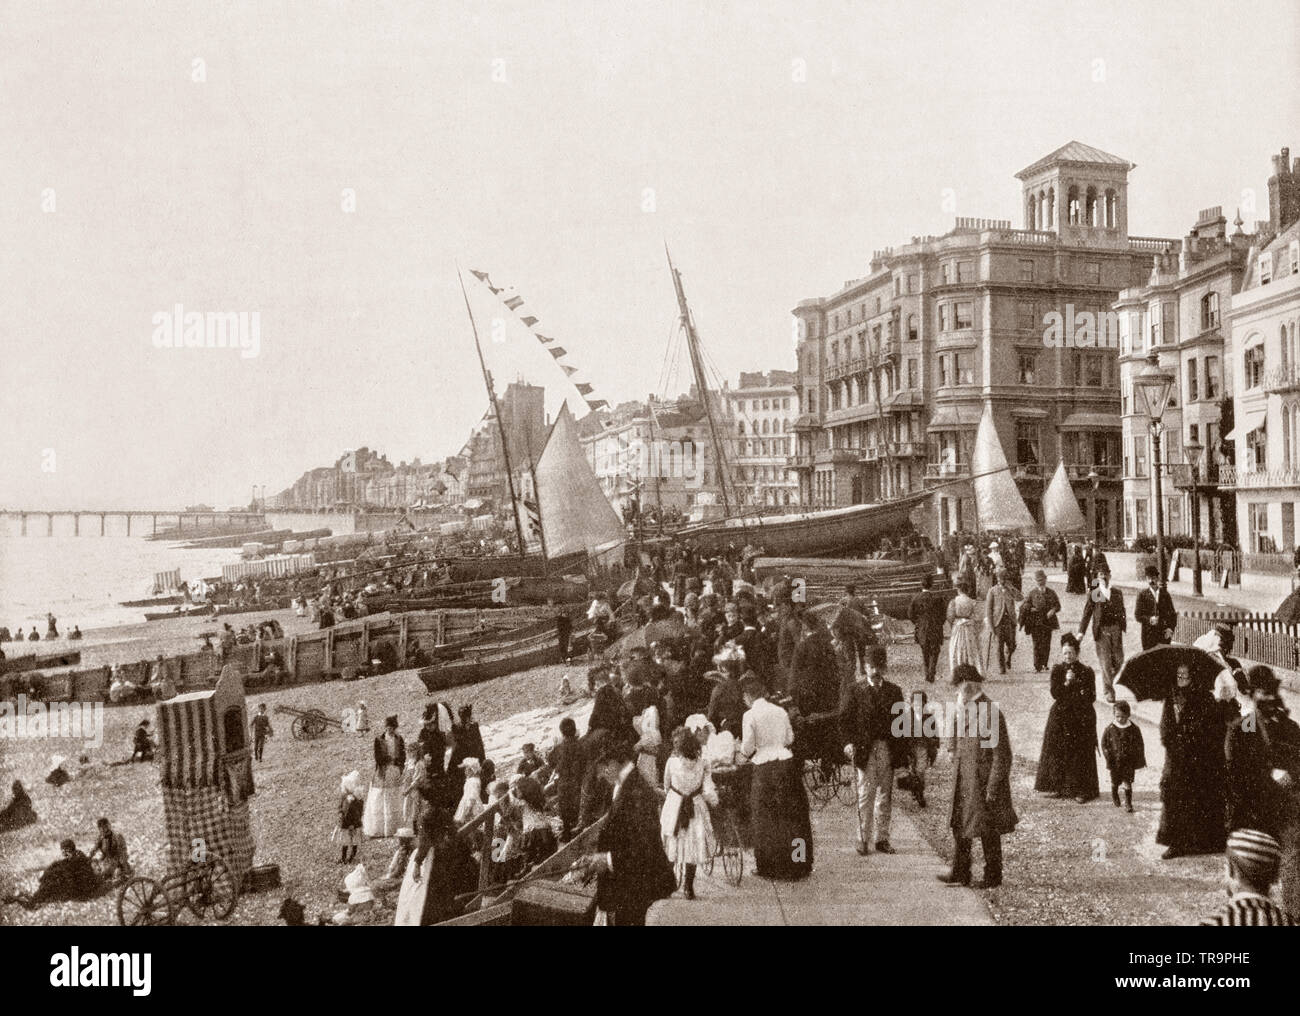 A 19th Century view of  the seafront with yachts in Hastings, a town in East Sussex on the south coast of England. Following the Napoleonic Wars, the town became one of the most fashionable resorts in Britain, brought about by the so-called health-giving properties of seawater, as well as the local springs and Roman baths. Like many coastal towns, the population of Hastings grew significantly as a result of the construction of railway links and the fashionable growth of seaside holidays during the Victorian era. In 1801, its population was a mere 3,175 and by 1891, it was almost sixty thousand - Stock Image